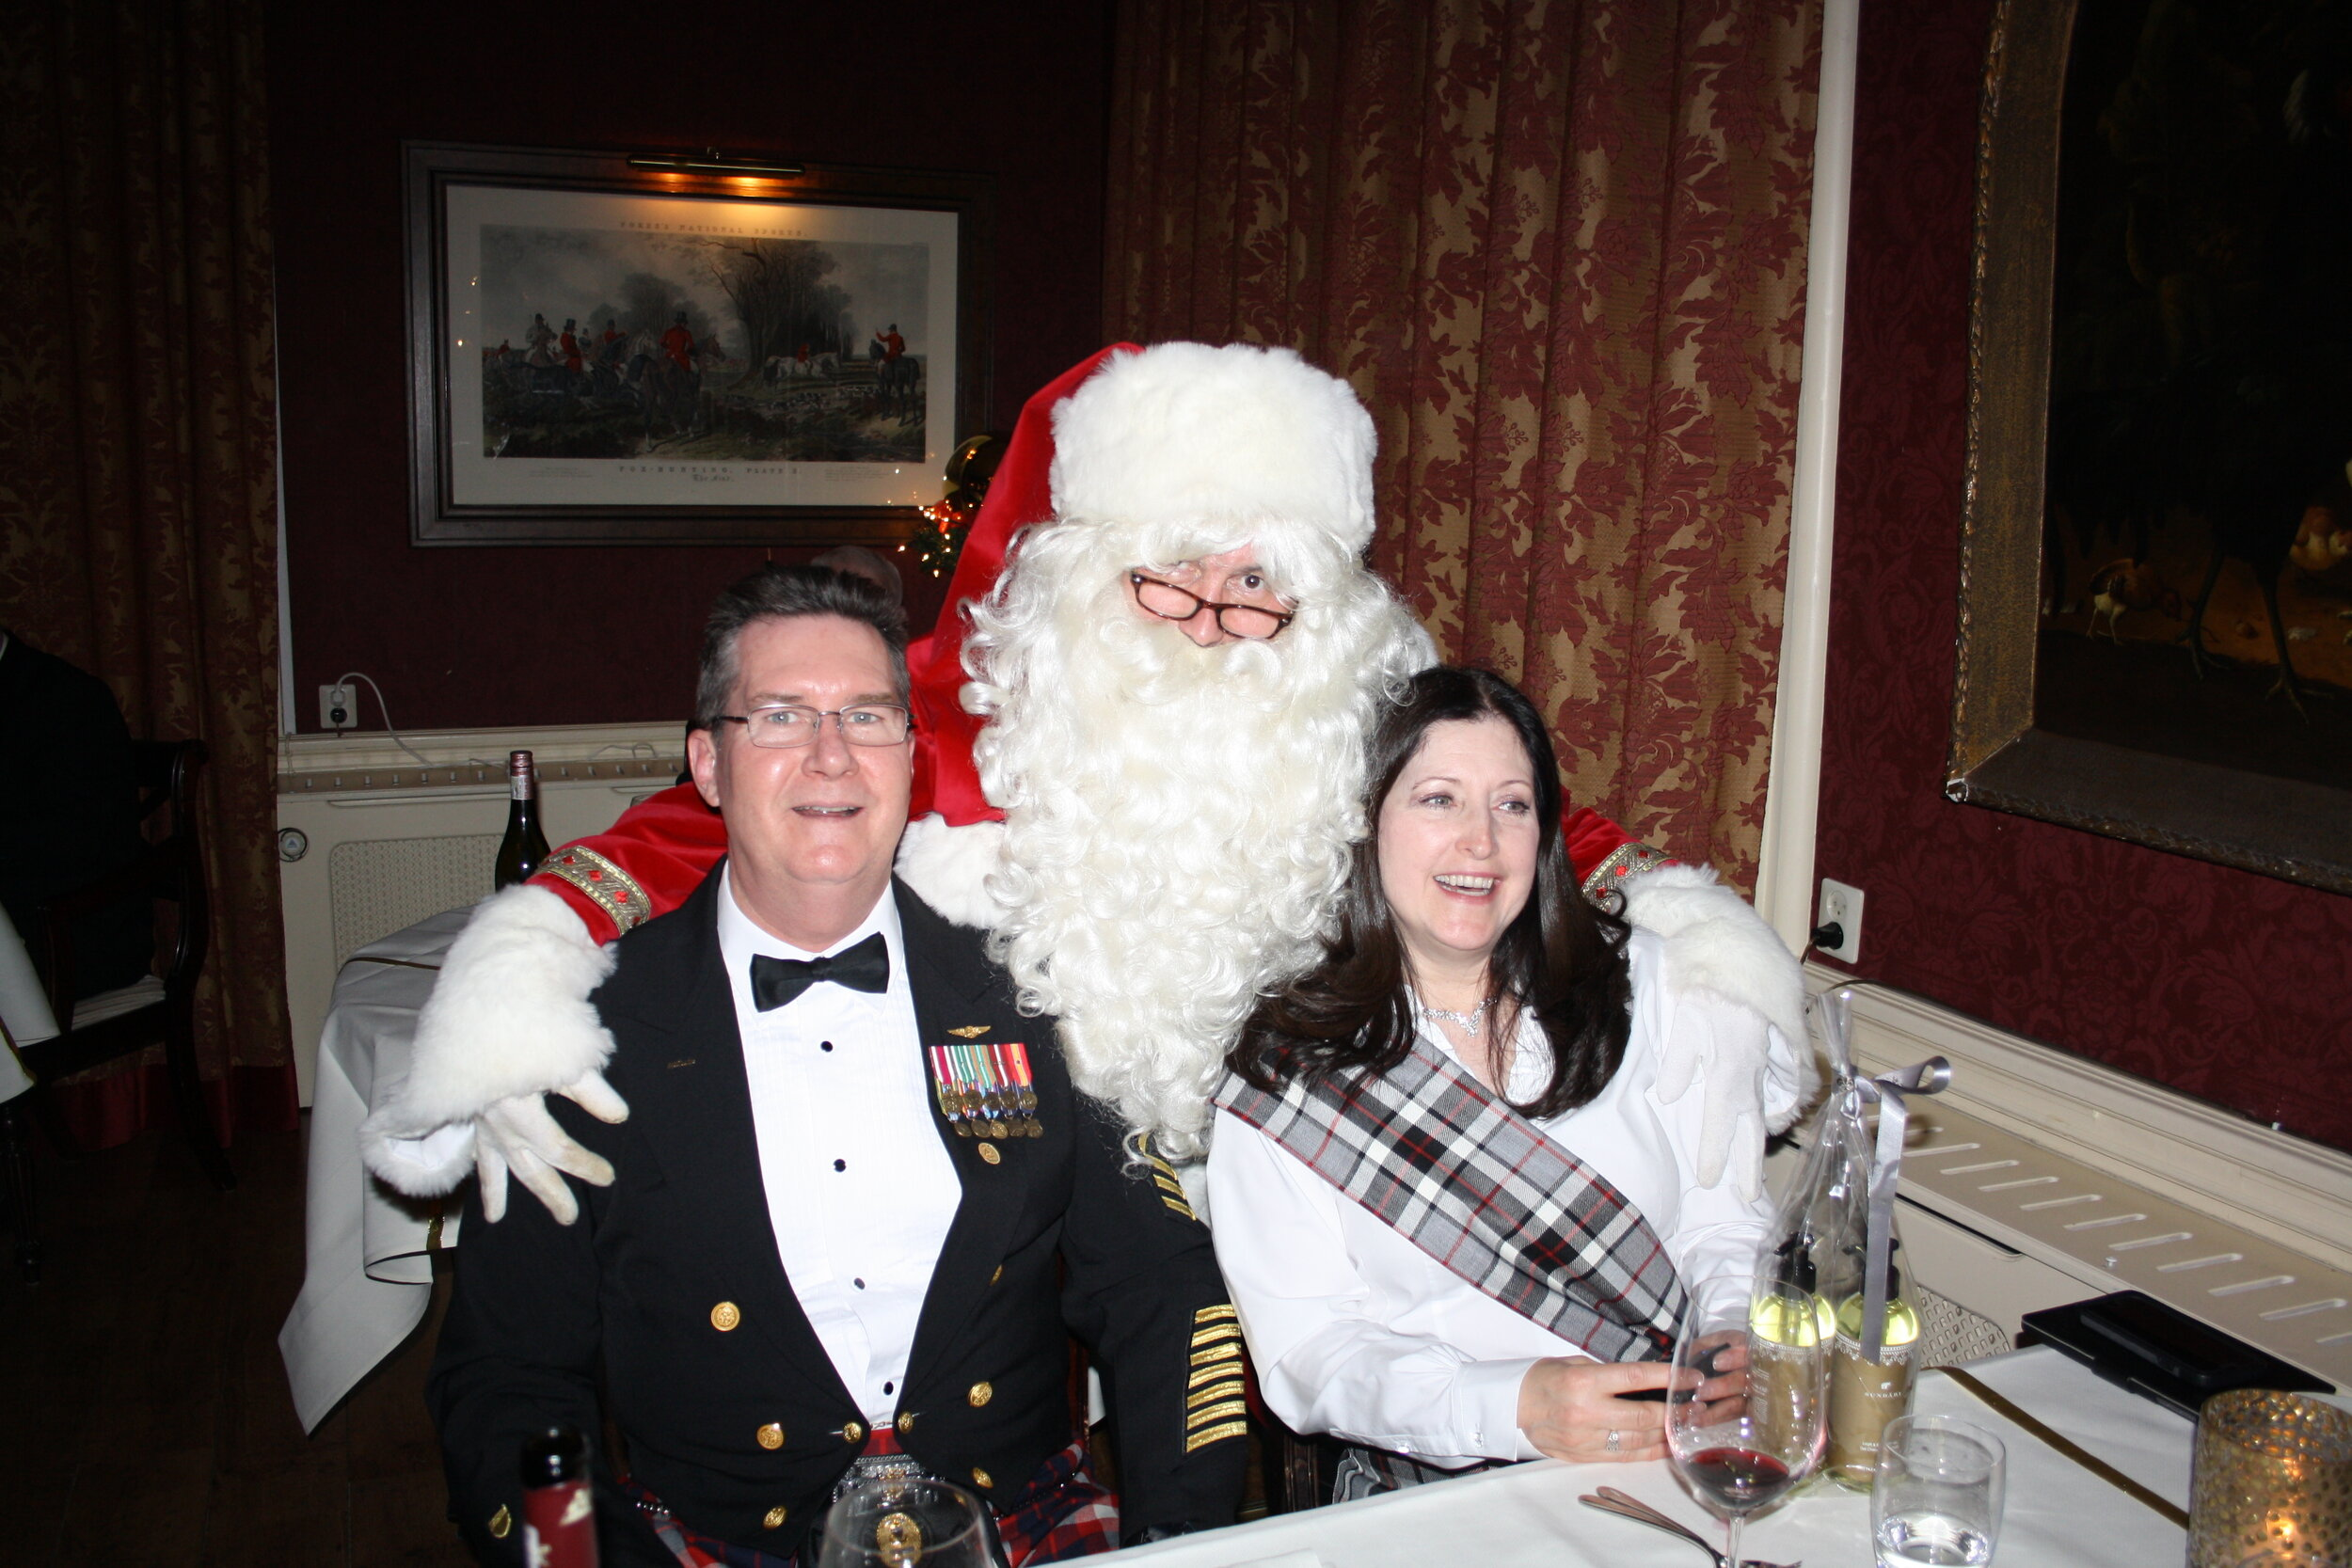 Mark and Denise Thomas with Santa Claus for Christmas Even Dinner—he greeted the waitstaff in Dutch!